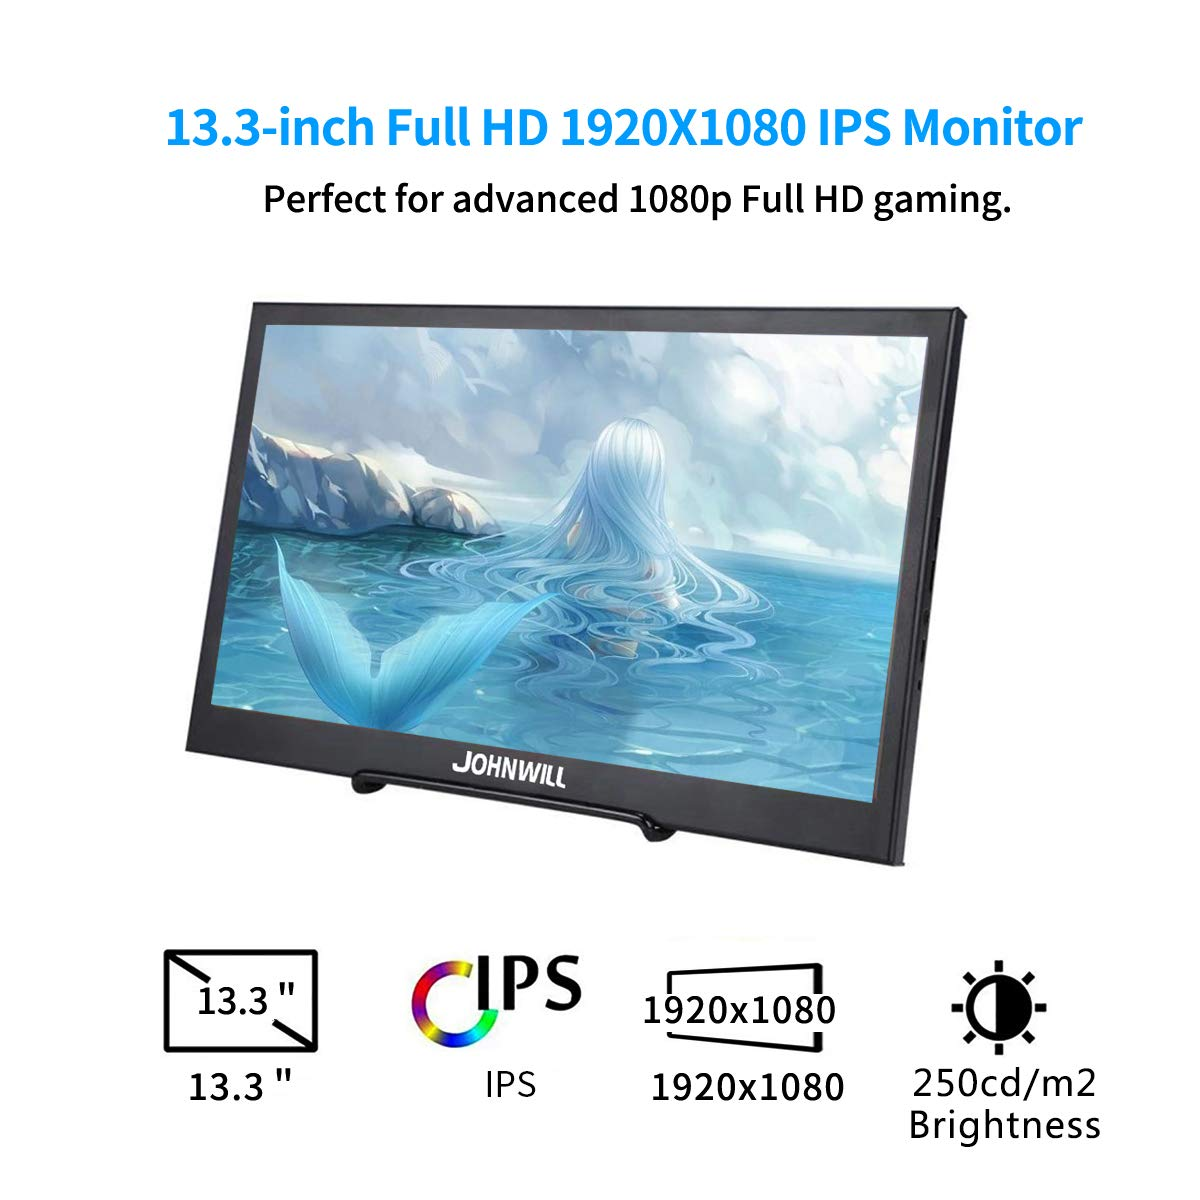 13.3 inch 2560x1440 Portable Monitor pc for PS4 Windows 7 8 10 Full HD LCD 2K HDMI IPS Screen gaming Monitor Ultra Thin Display - 3